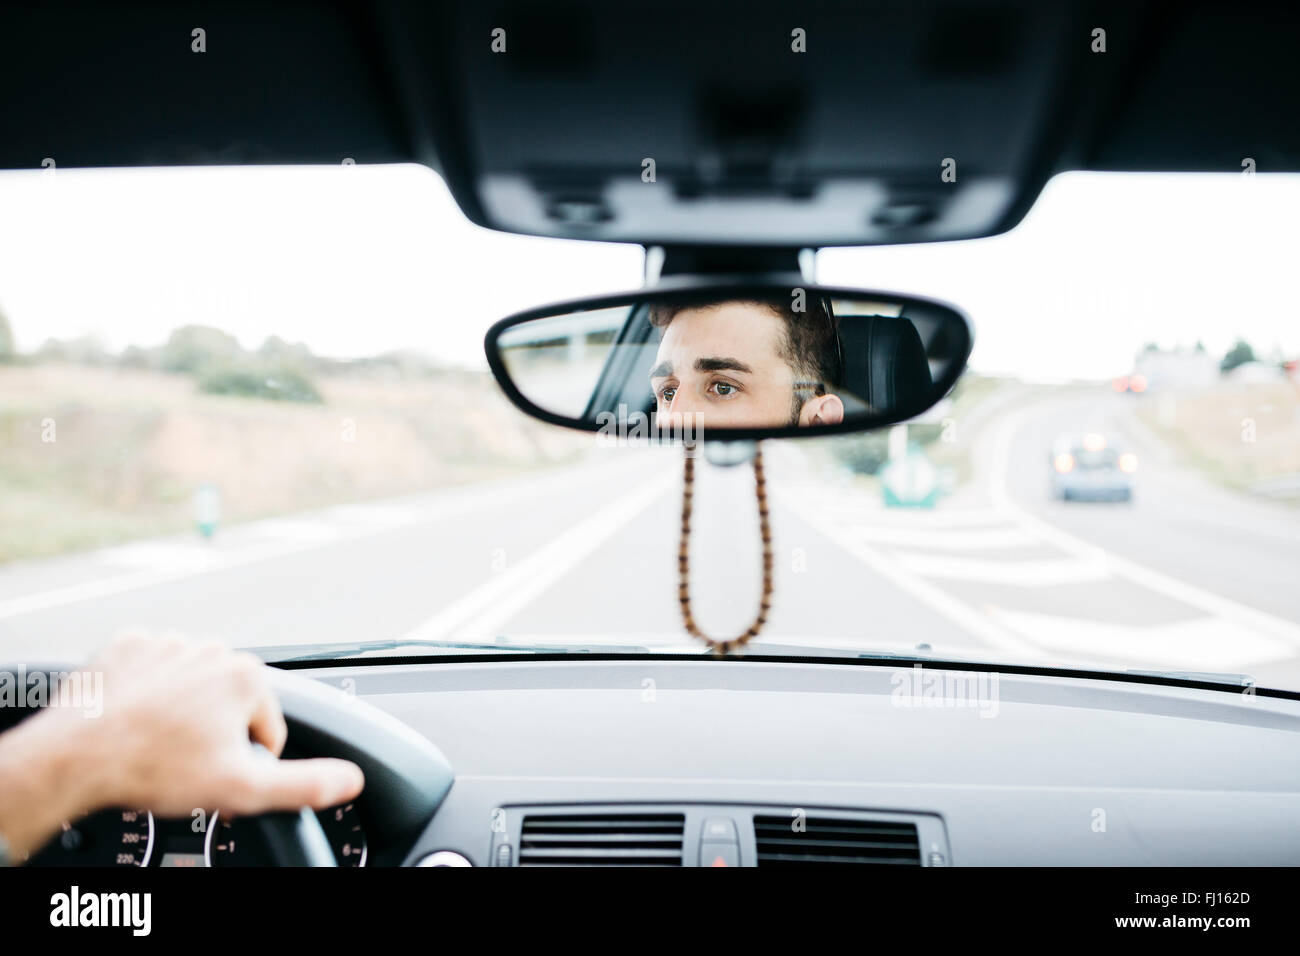 Young man driving a car, close up of rear mirror - Stock Image